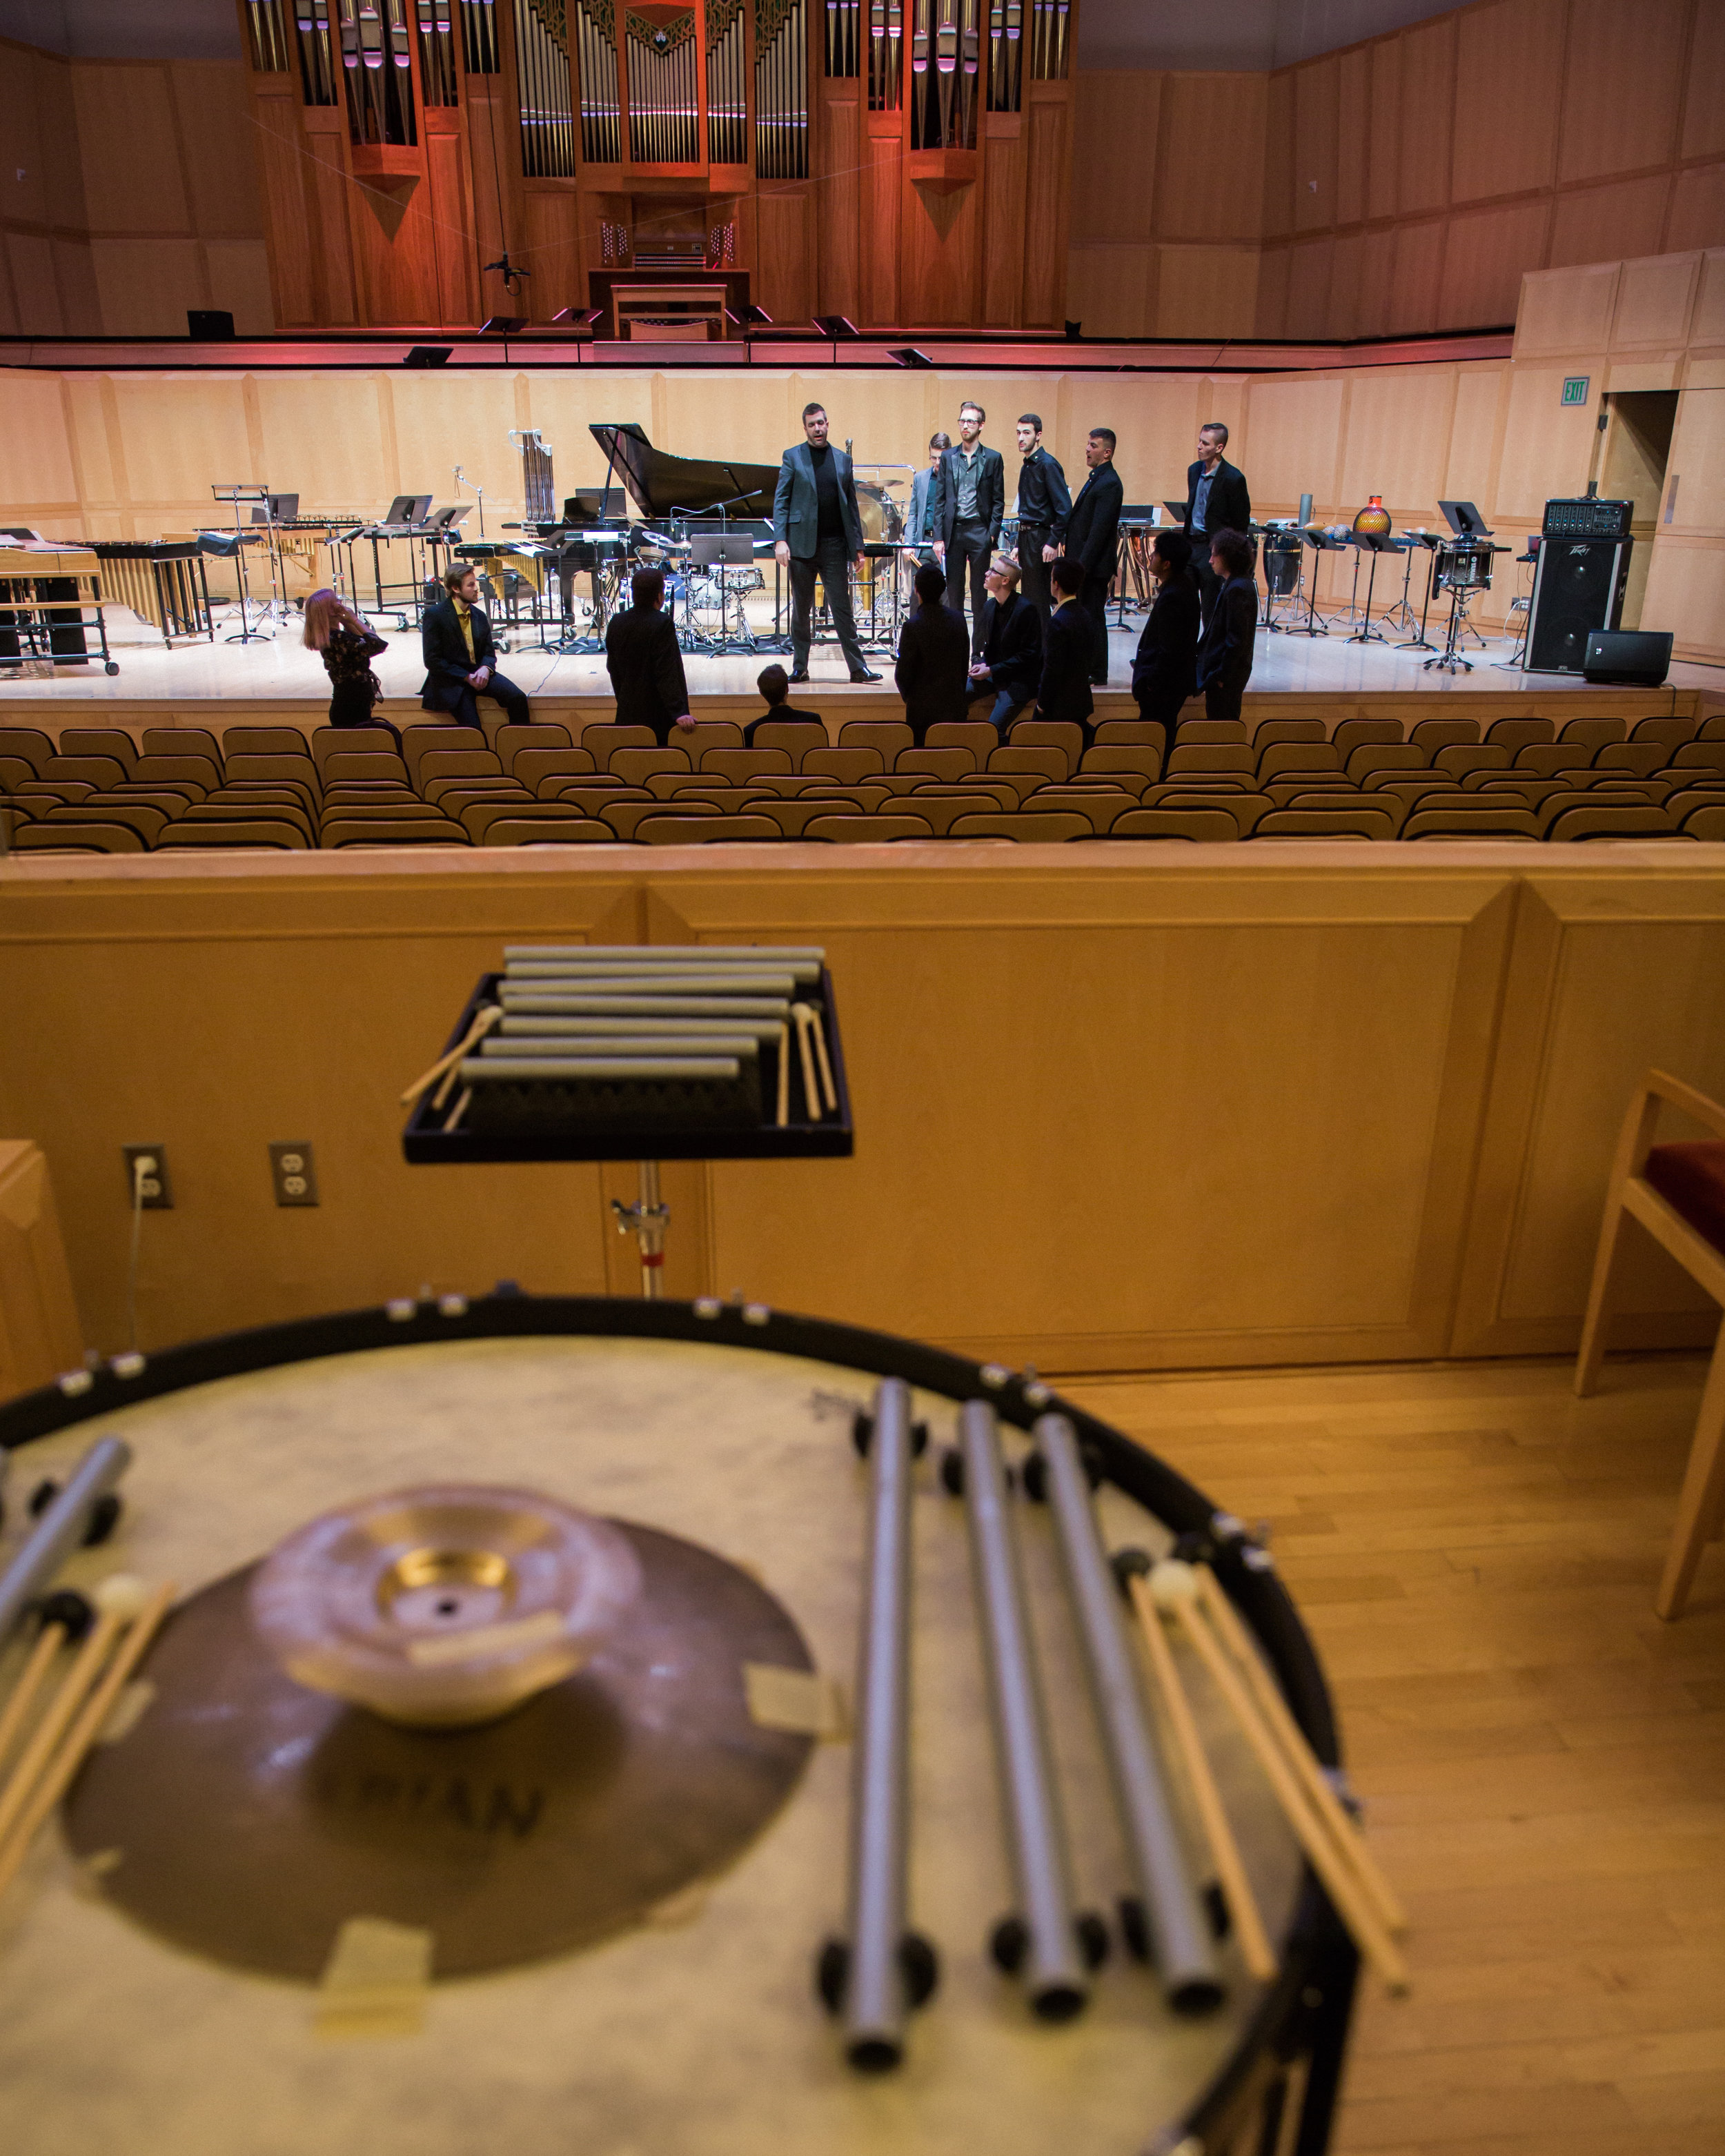 School of Music Percussion Ensemble 181 edit.JPG